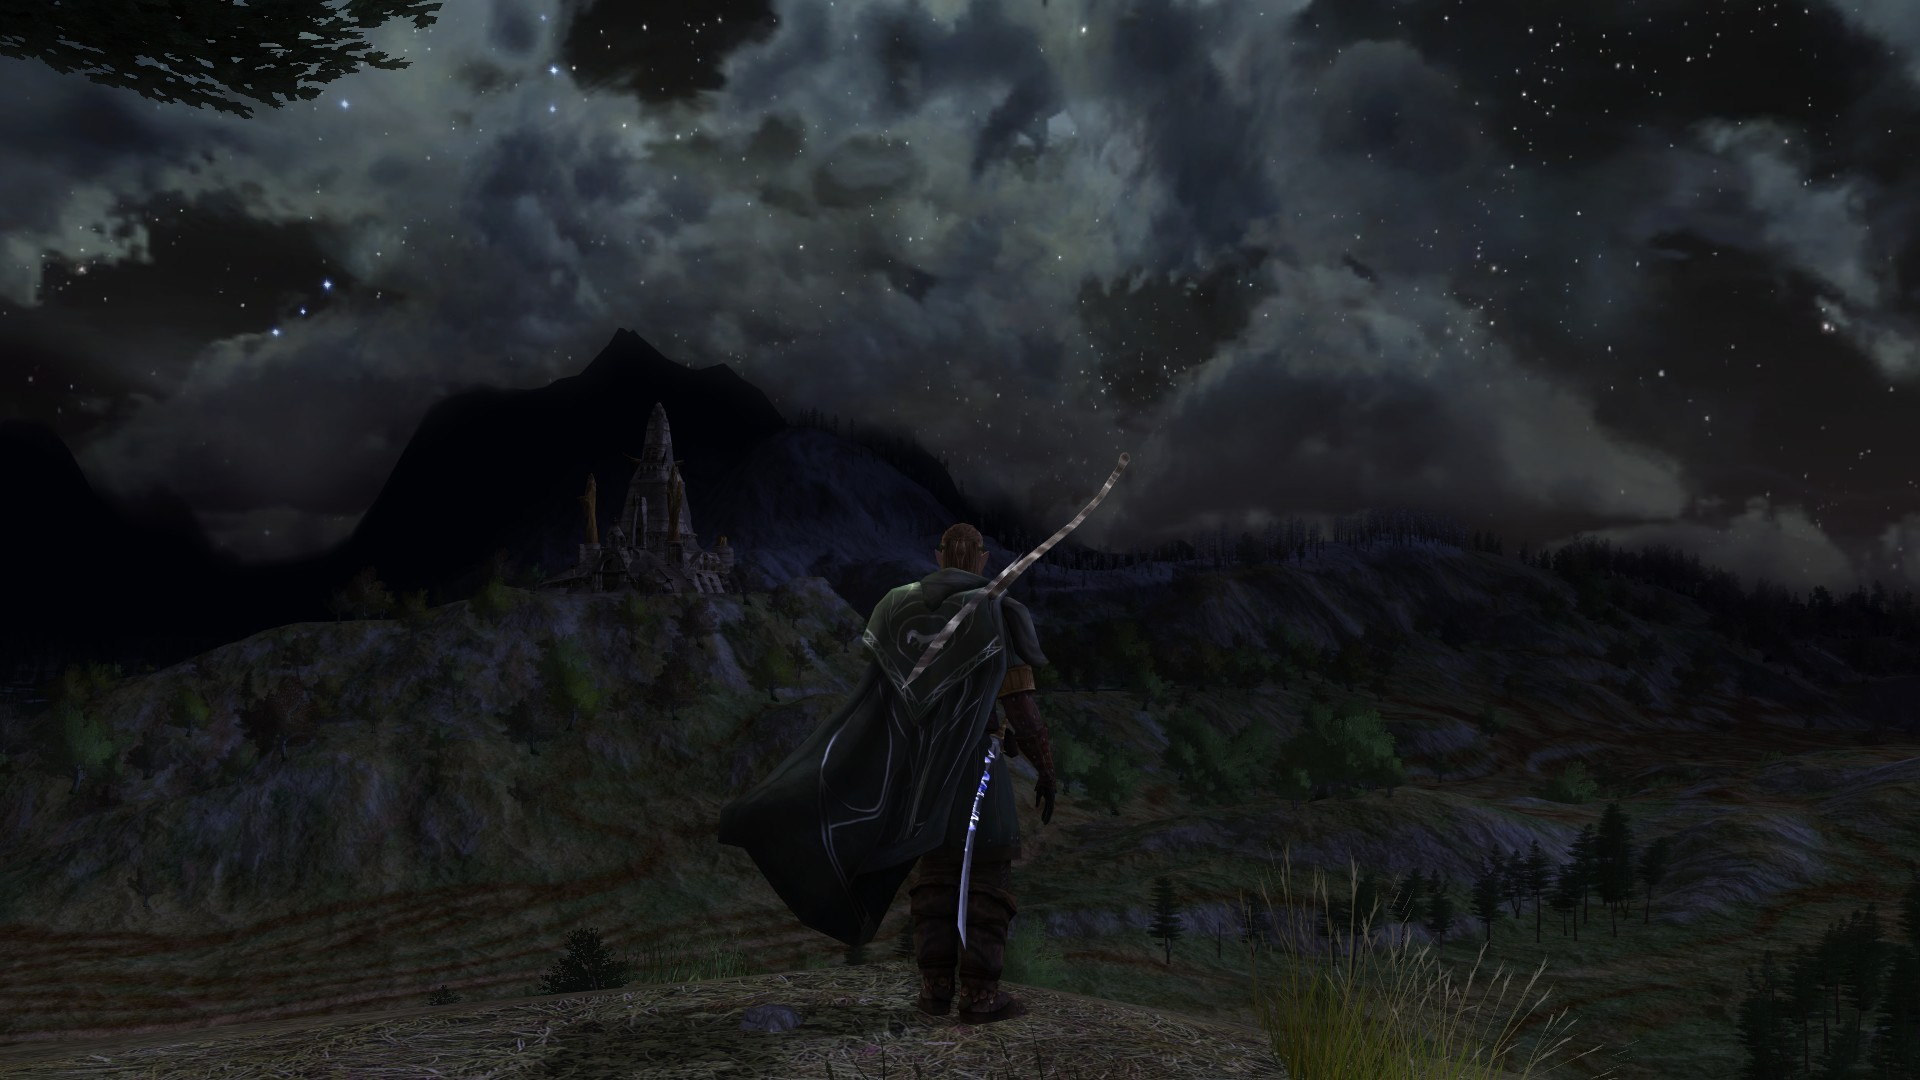 Lord of the Rings Online - Dunland Moonlit night